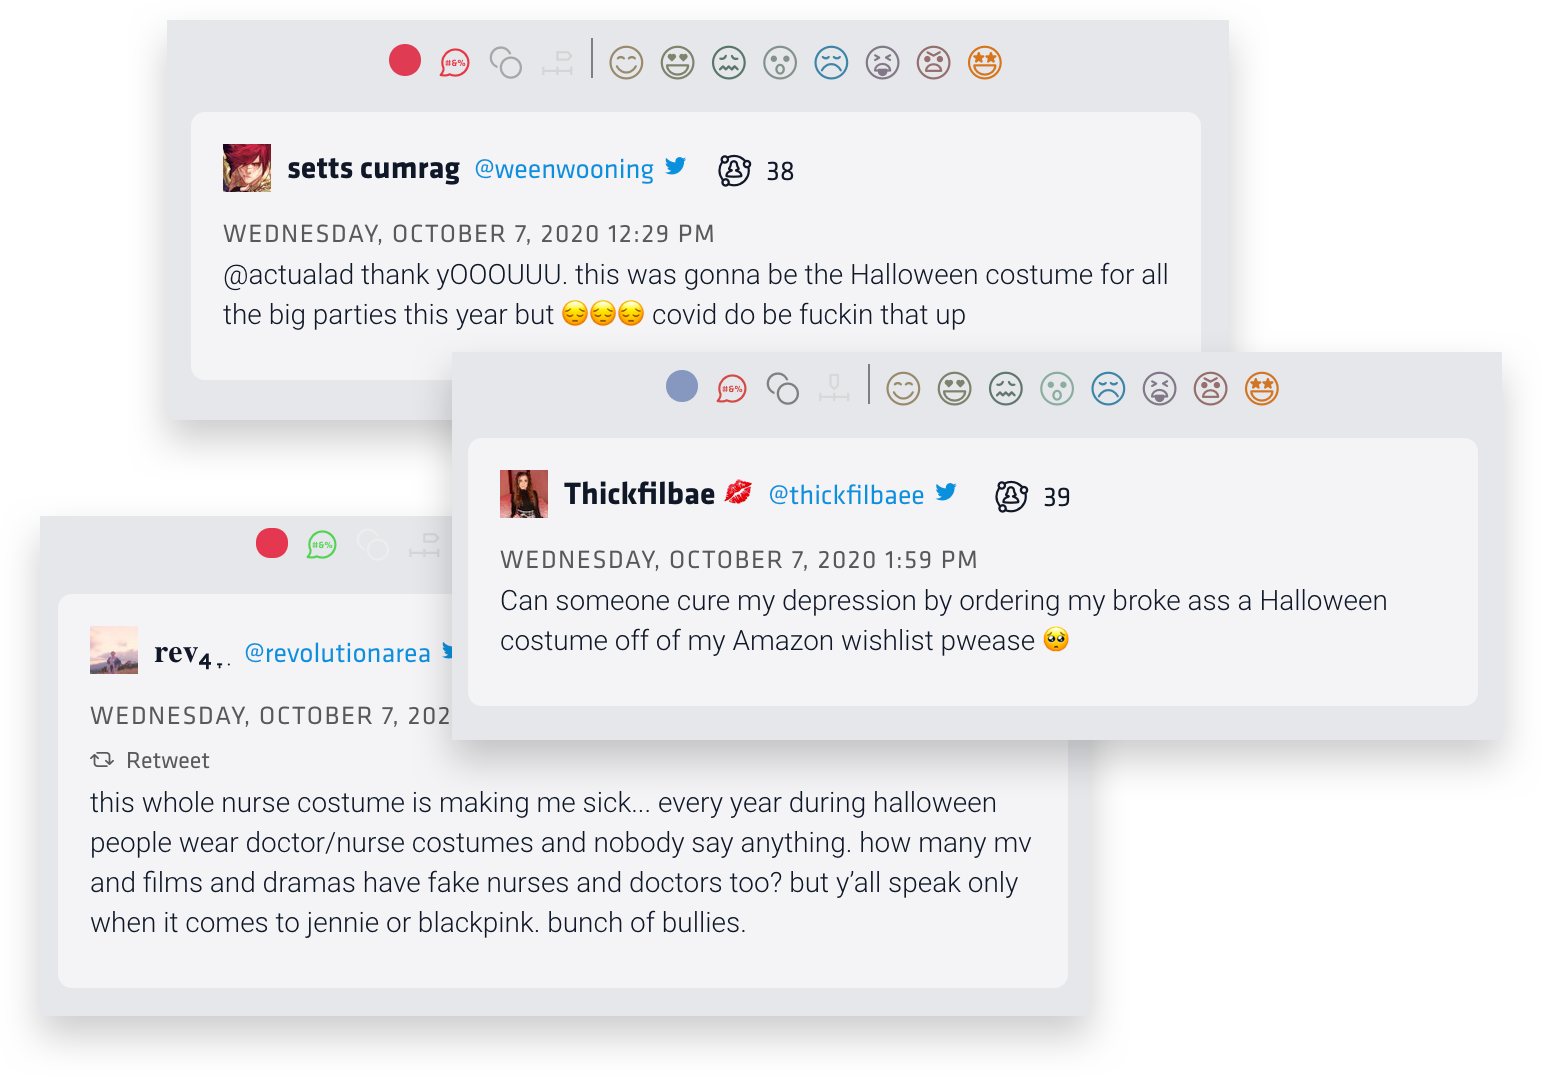 """These three tweets were found through Nuvi's emotion social analytic metric of sadness. The first says, """"thank yooouuu. this was gonna be the Halloween costume for all the big parties this year but covid do be fuckin that up. The second reads, """" can someone cure my depression by ordering my broke ass a Halloween costumer off of my Amazon wishlist pwease. The third reads, """"this whole nurse costume thing makes me sick... every year during Halloween people wear doctor/nurse costumes and nobody says anything. how many mv and films and dramas have fake nurses and doctors too? but y'all speak only when it comes to jennie or blackpink. bunch of bullies."""